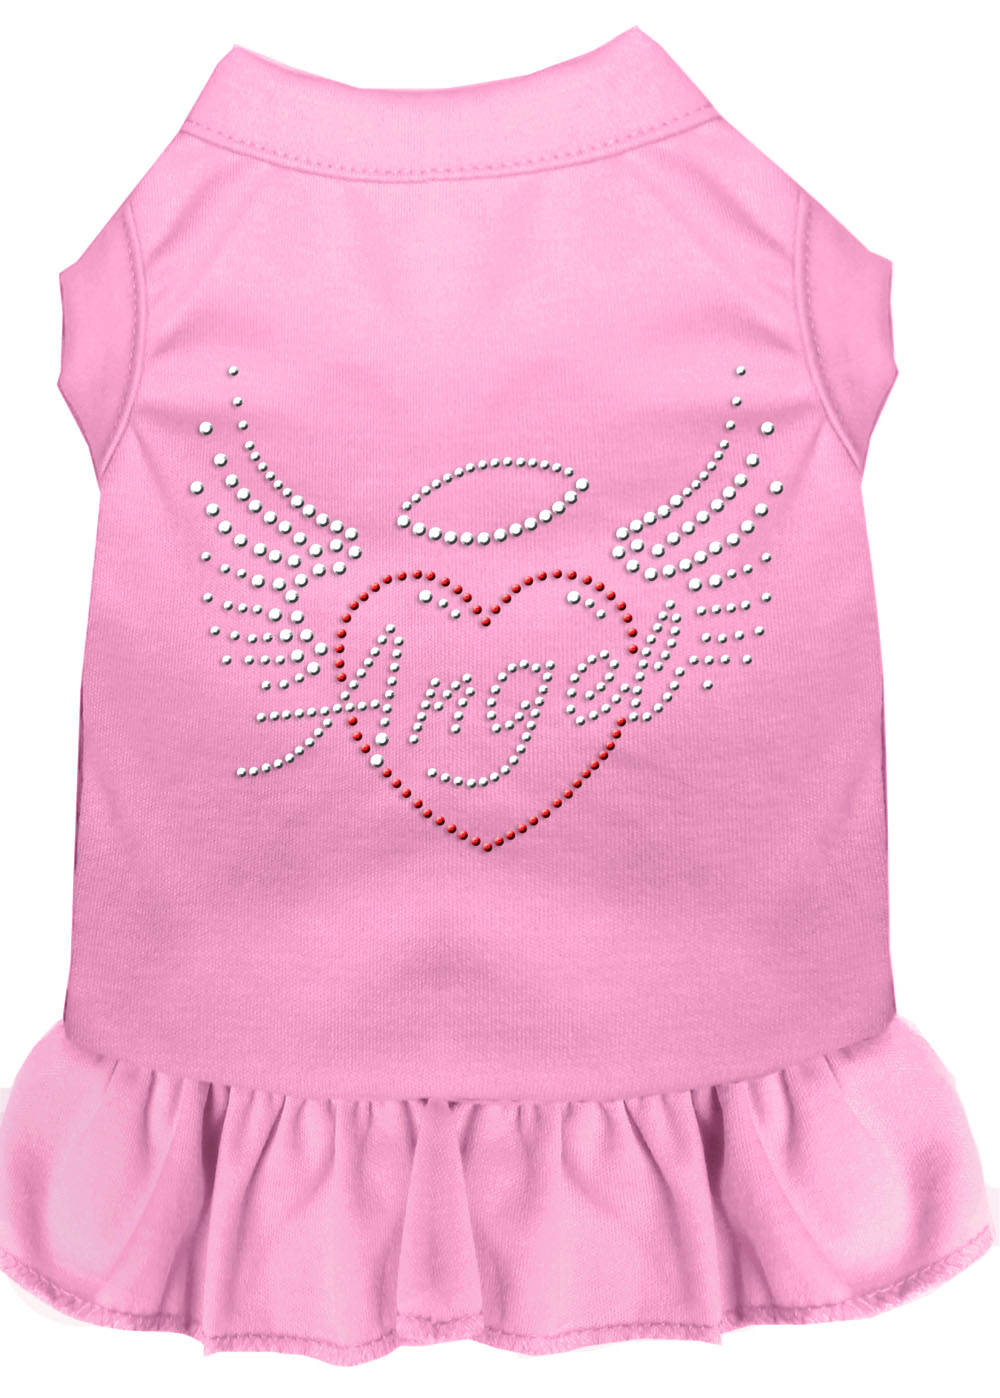 Angel Heart Rhinestone Dress Light Pink